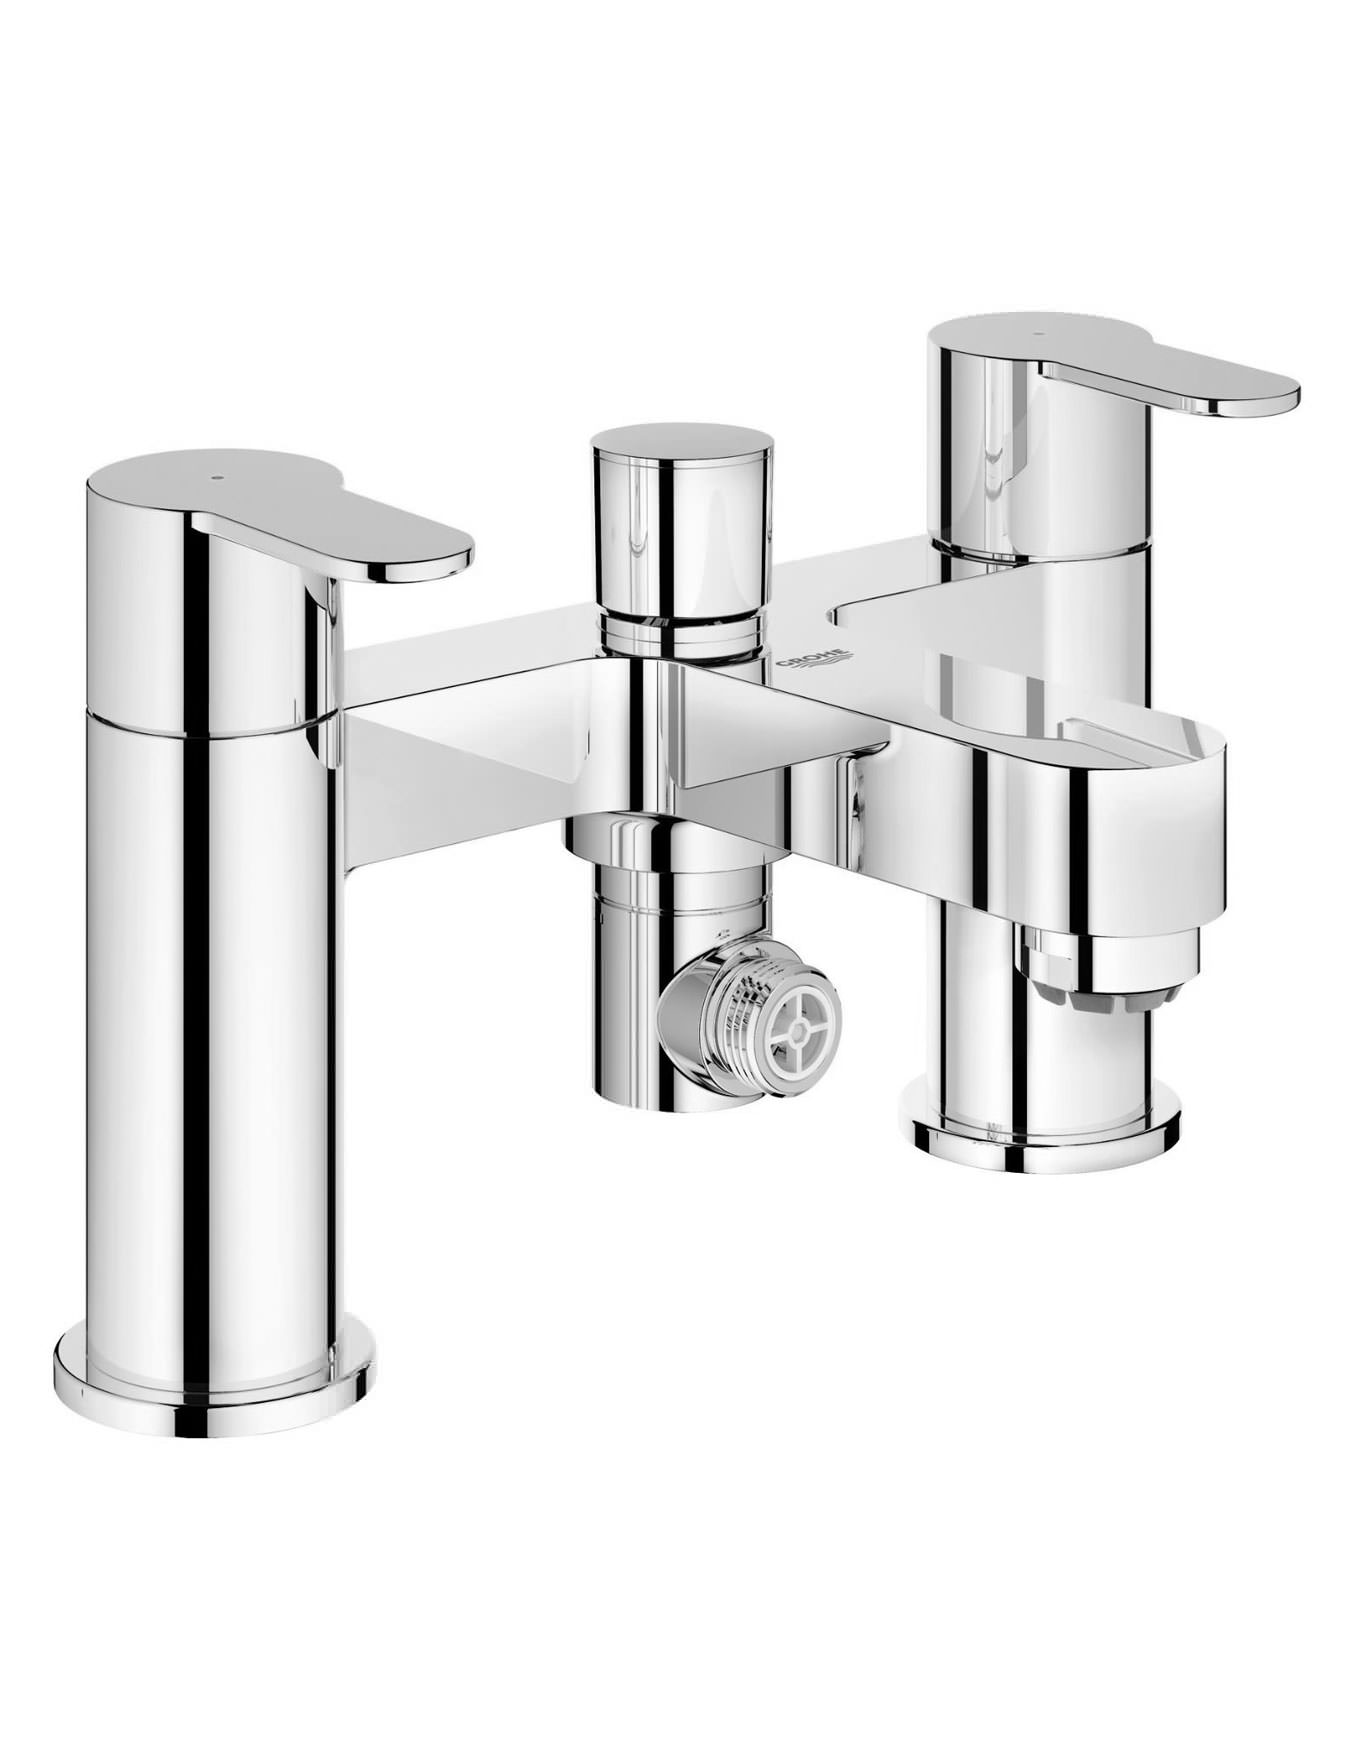 Grohe Eurostyle Cosmo Two Handled Bath Shower Mixer Tap